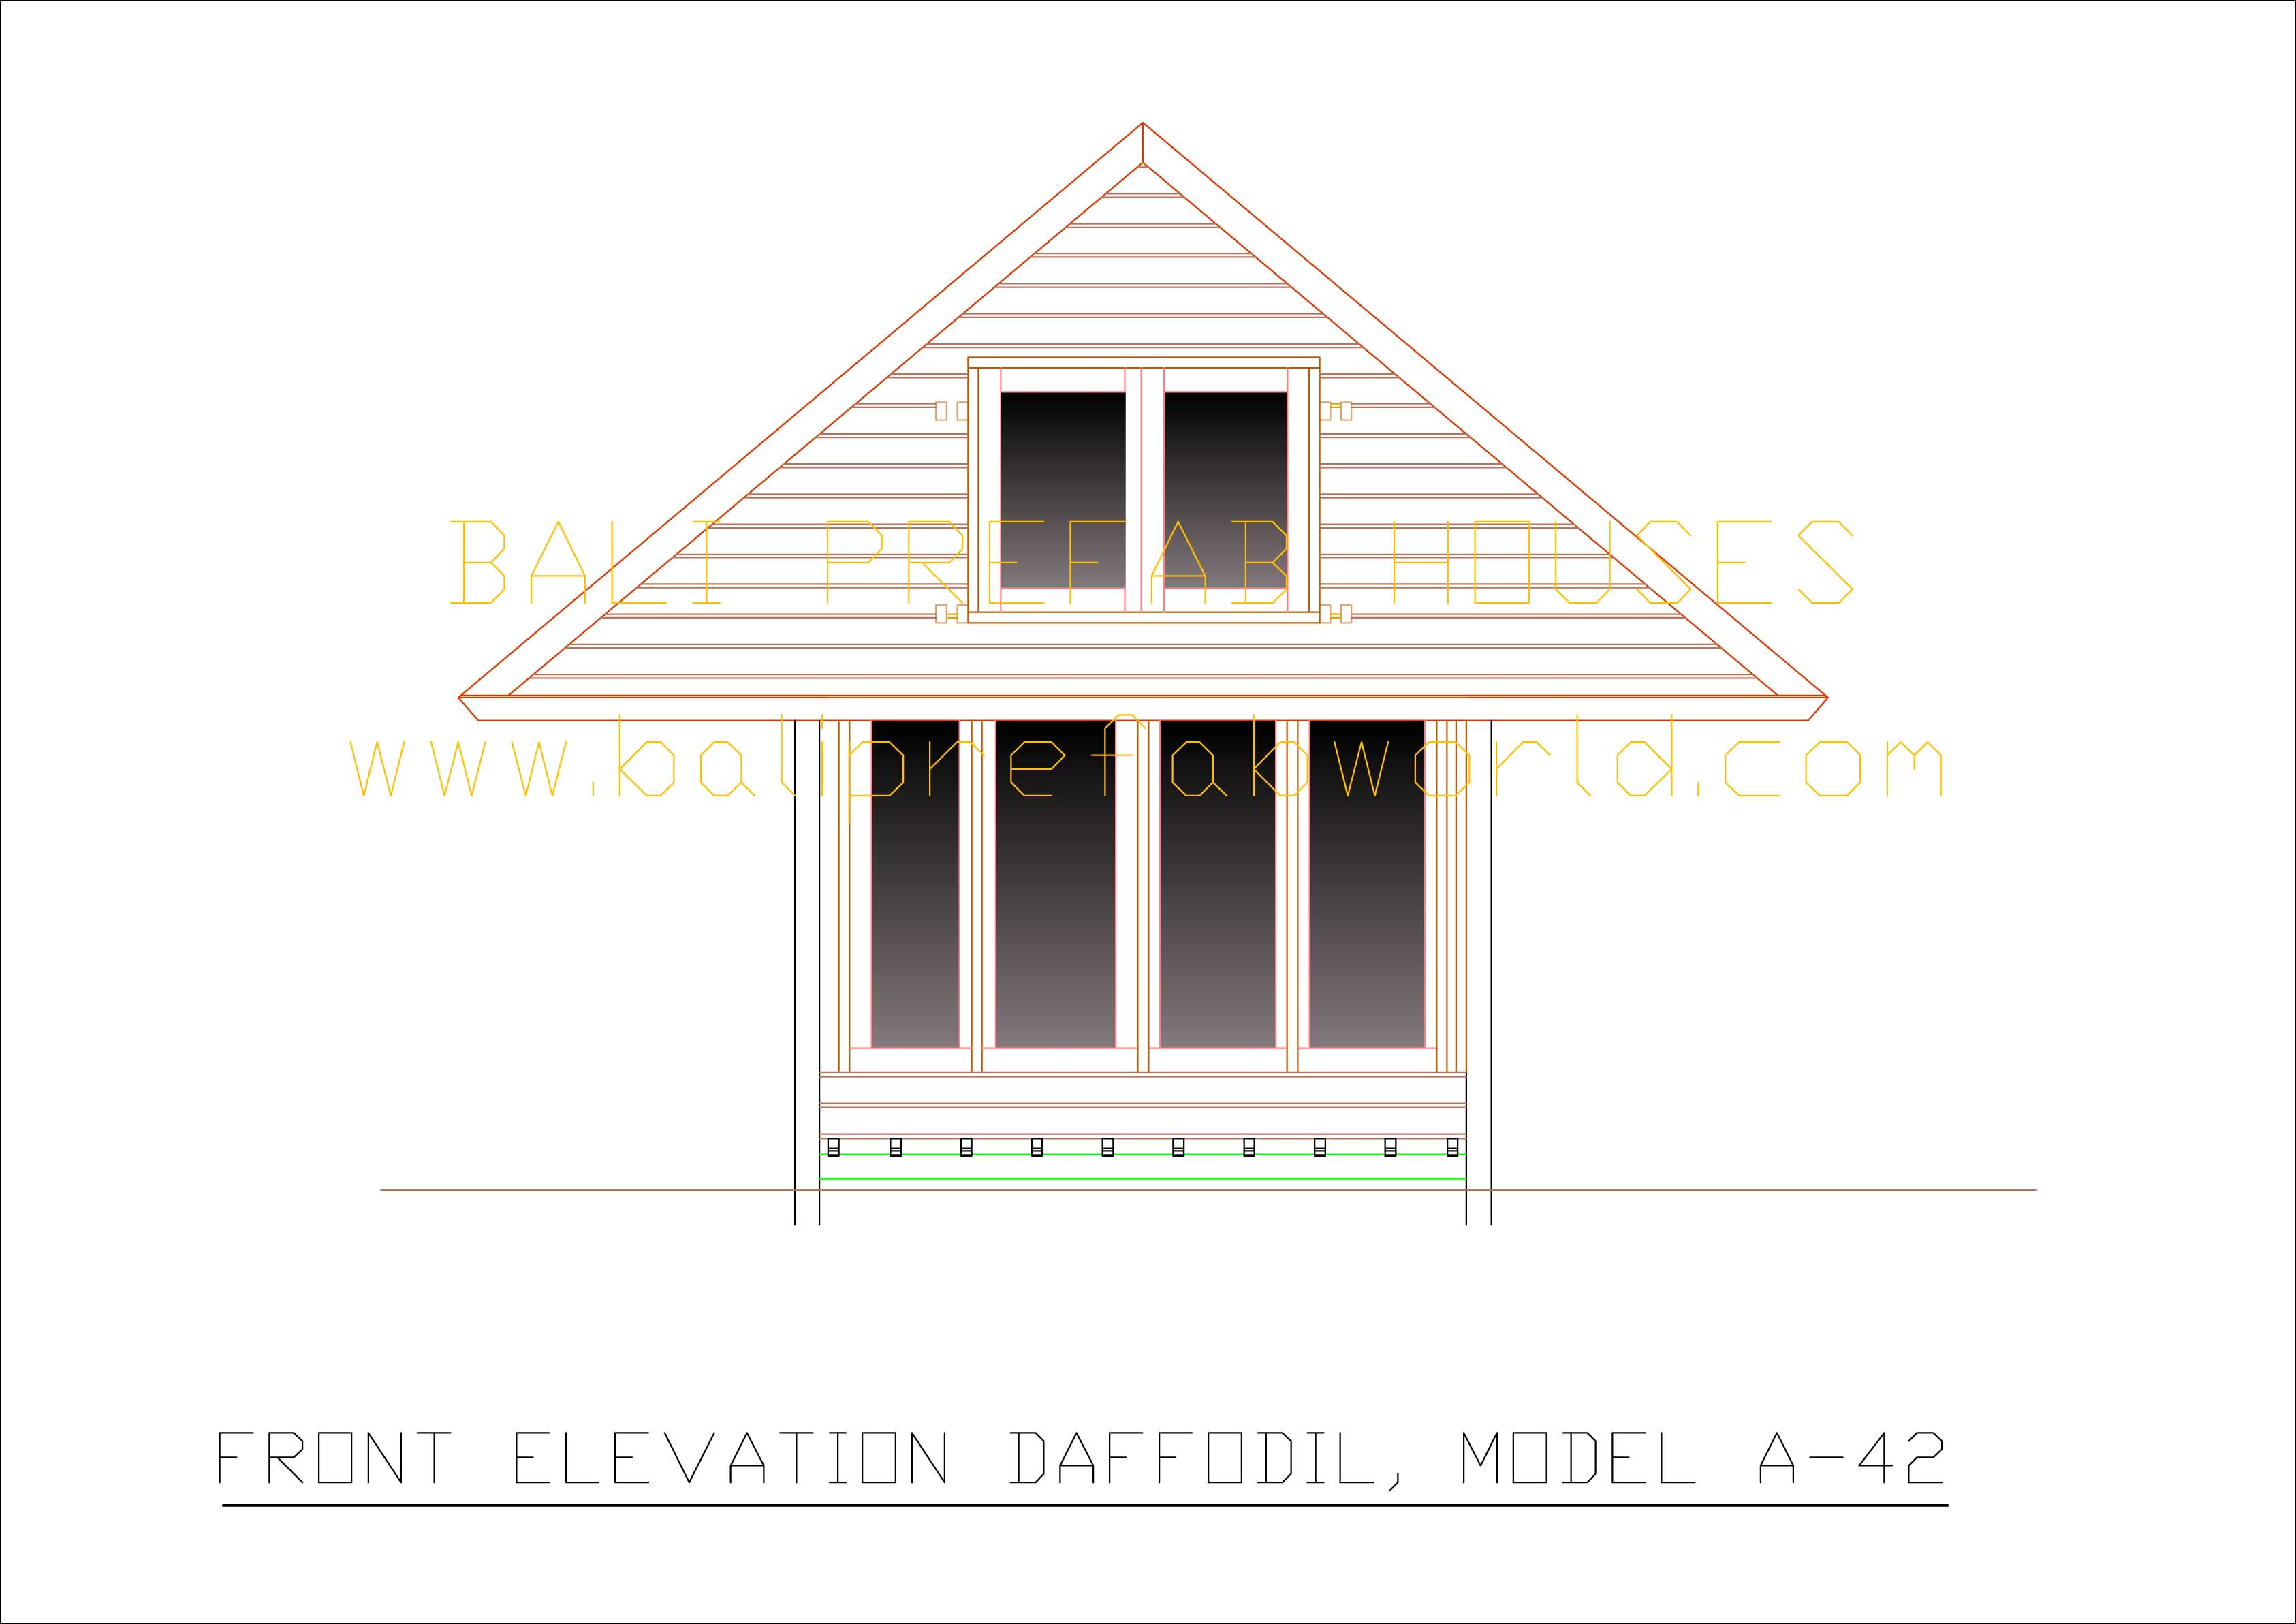 Daffodil front elevation